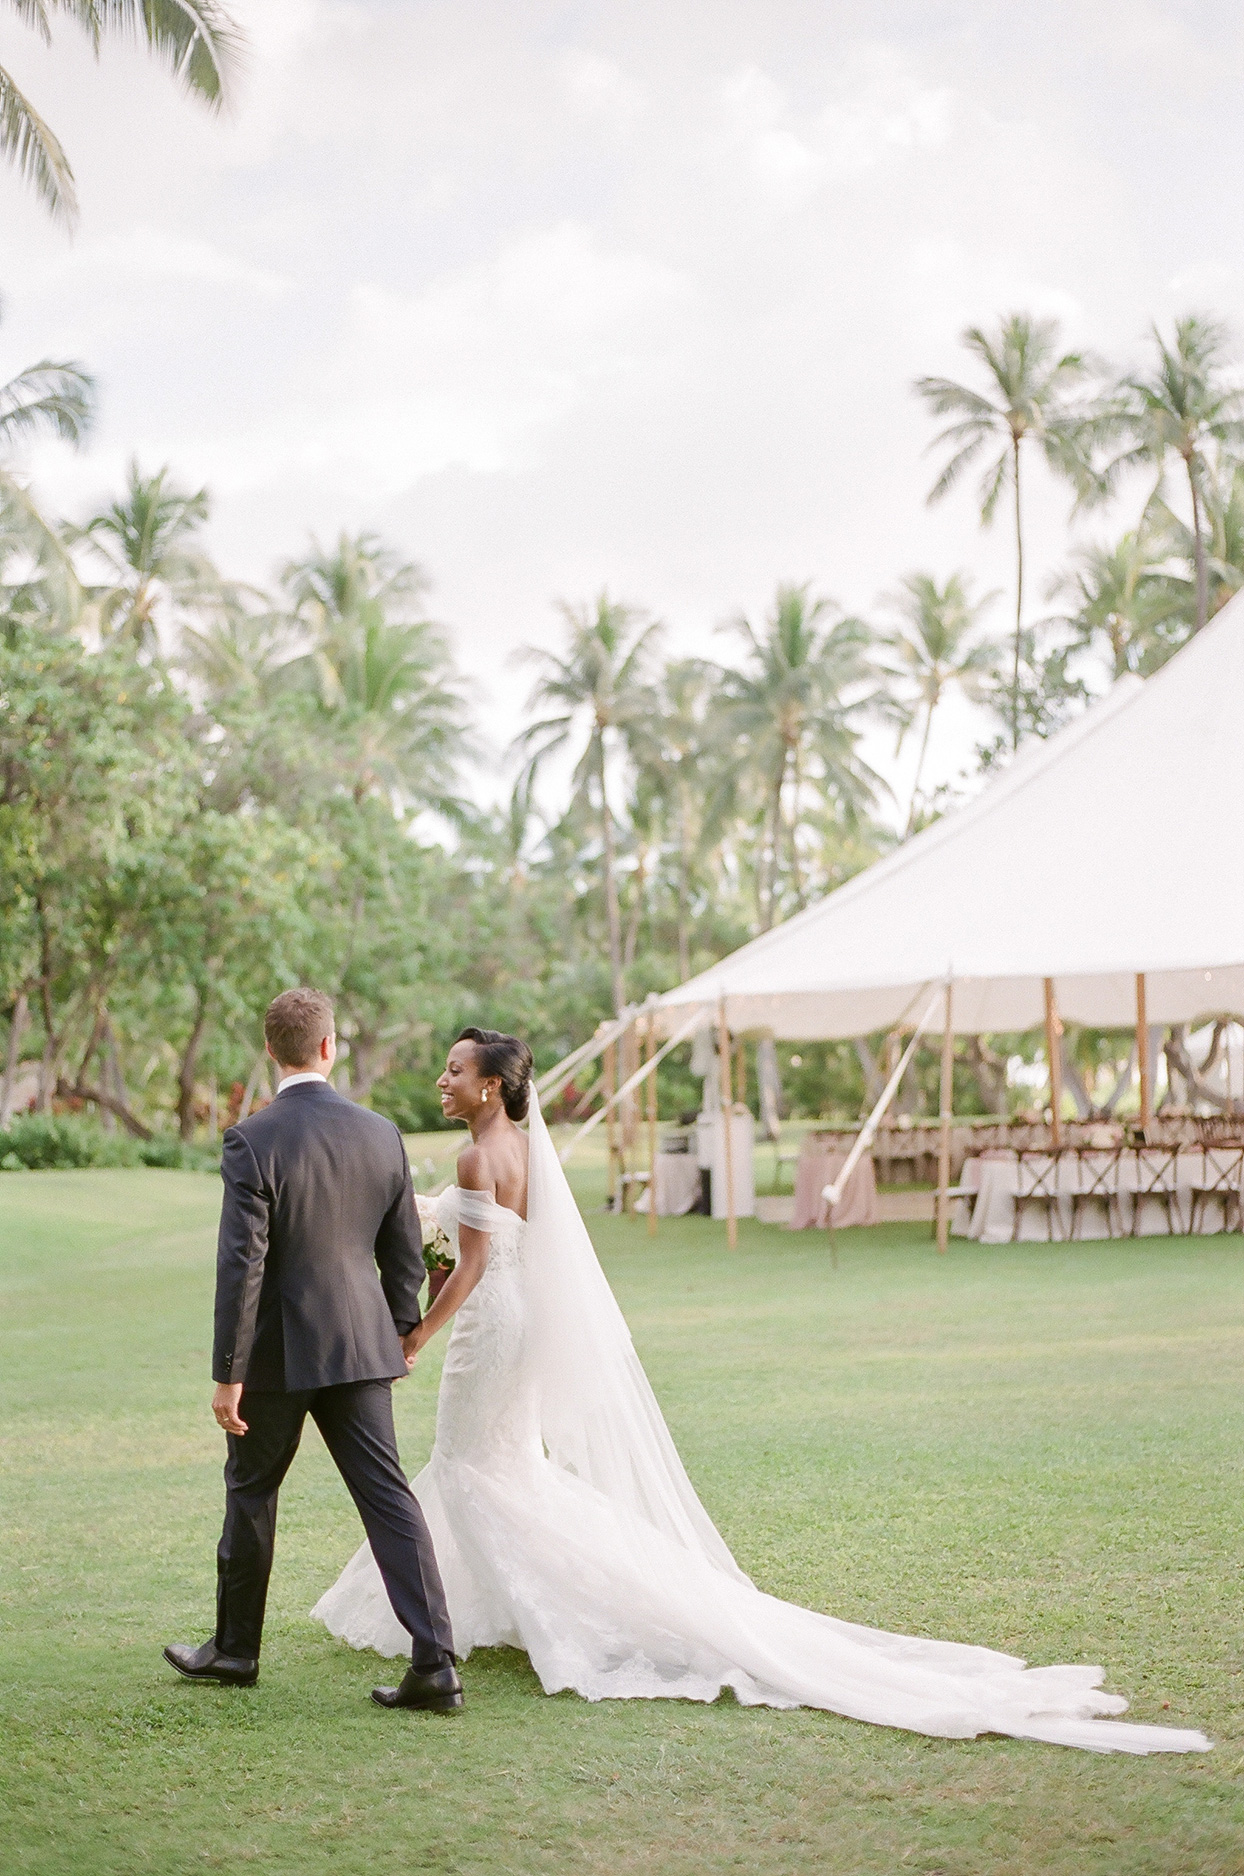 vanessa nathan wedding couple walking across grass with reception tent behind